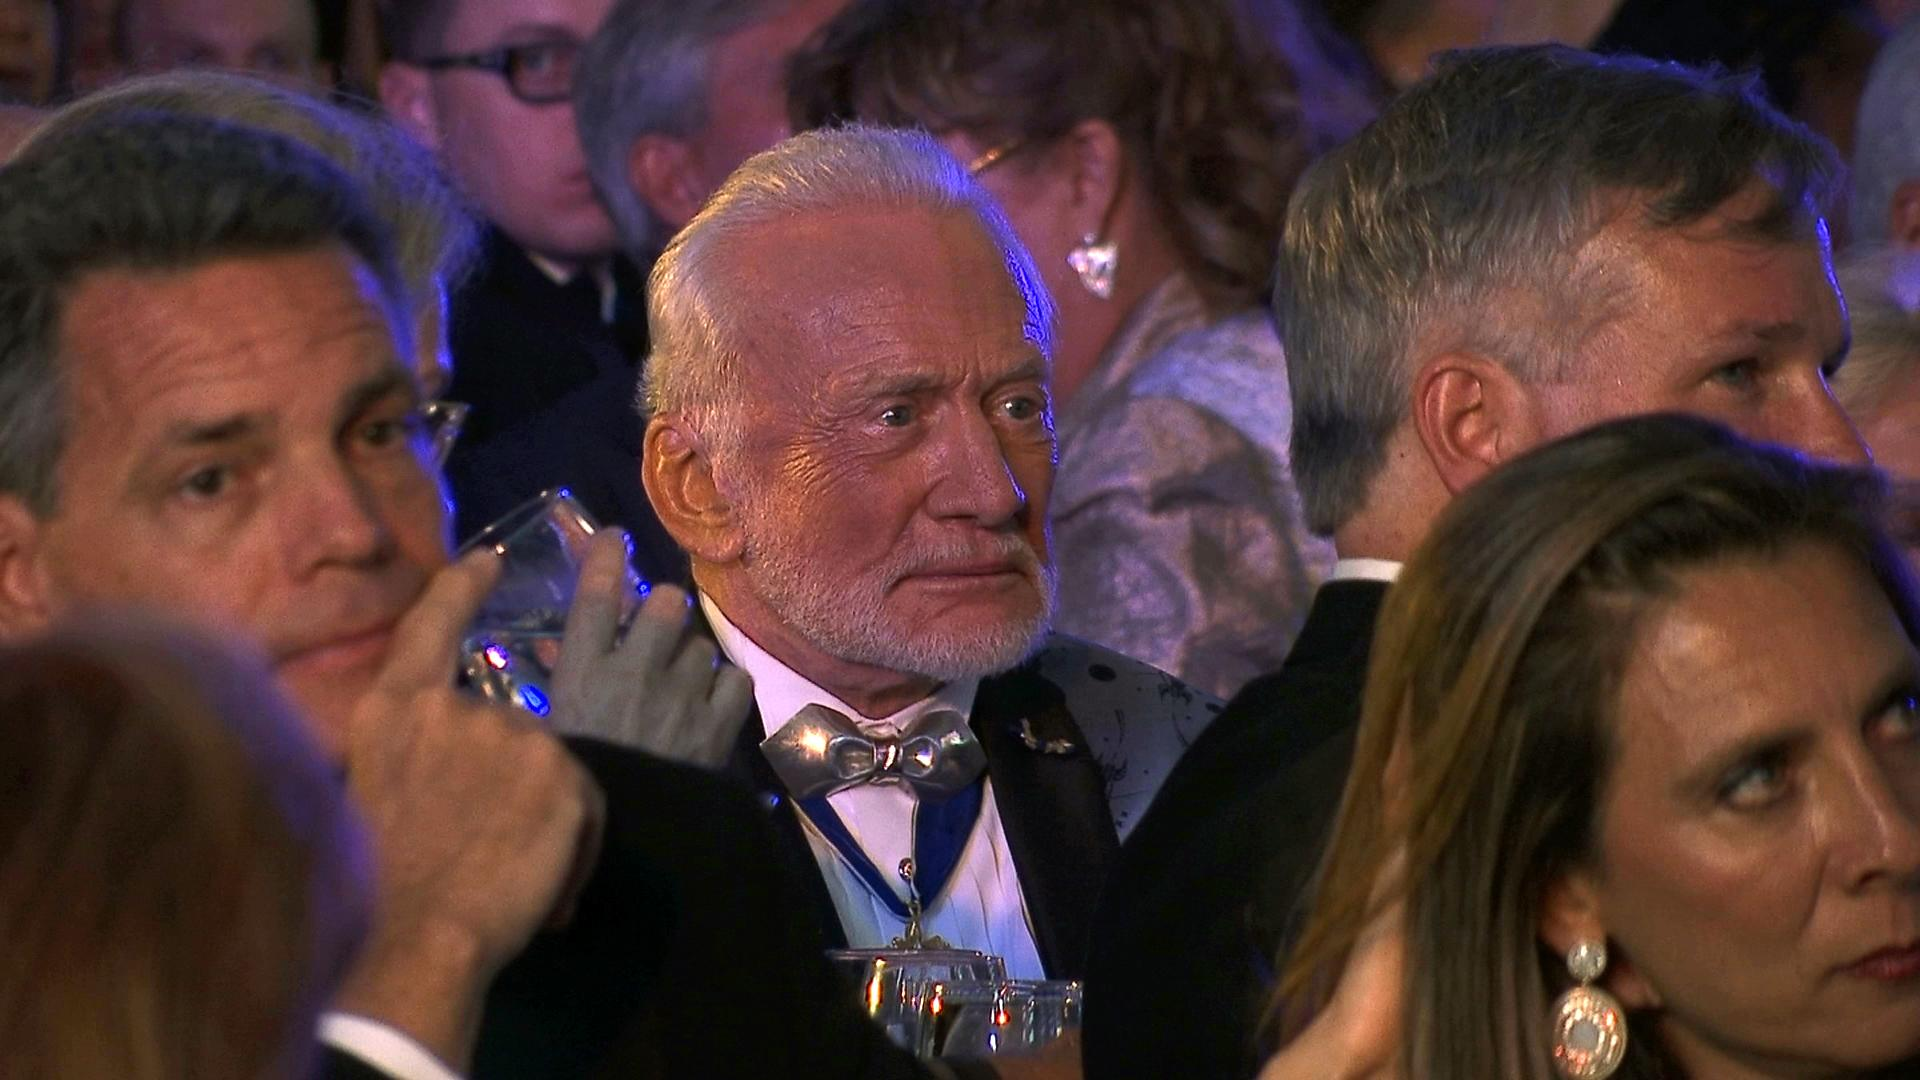 Apollo 11 astronaut Buzz Aldrin attends the commemoration for the upcoming anniversary of the 1969 mission to the moon and a gala for his non-profit space education foundation, ShareSpace Foundation, at the Kennedy Space Center in Cape Canaveral, Fla., on Saturday, July 15, 2017. (AP Photo/Alex Sanz)